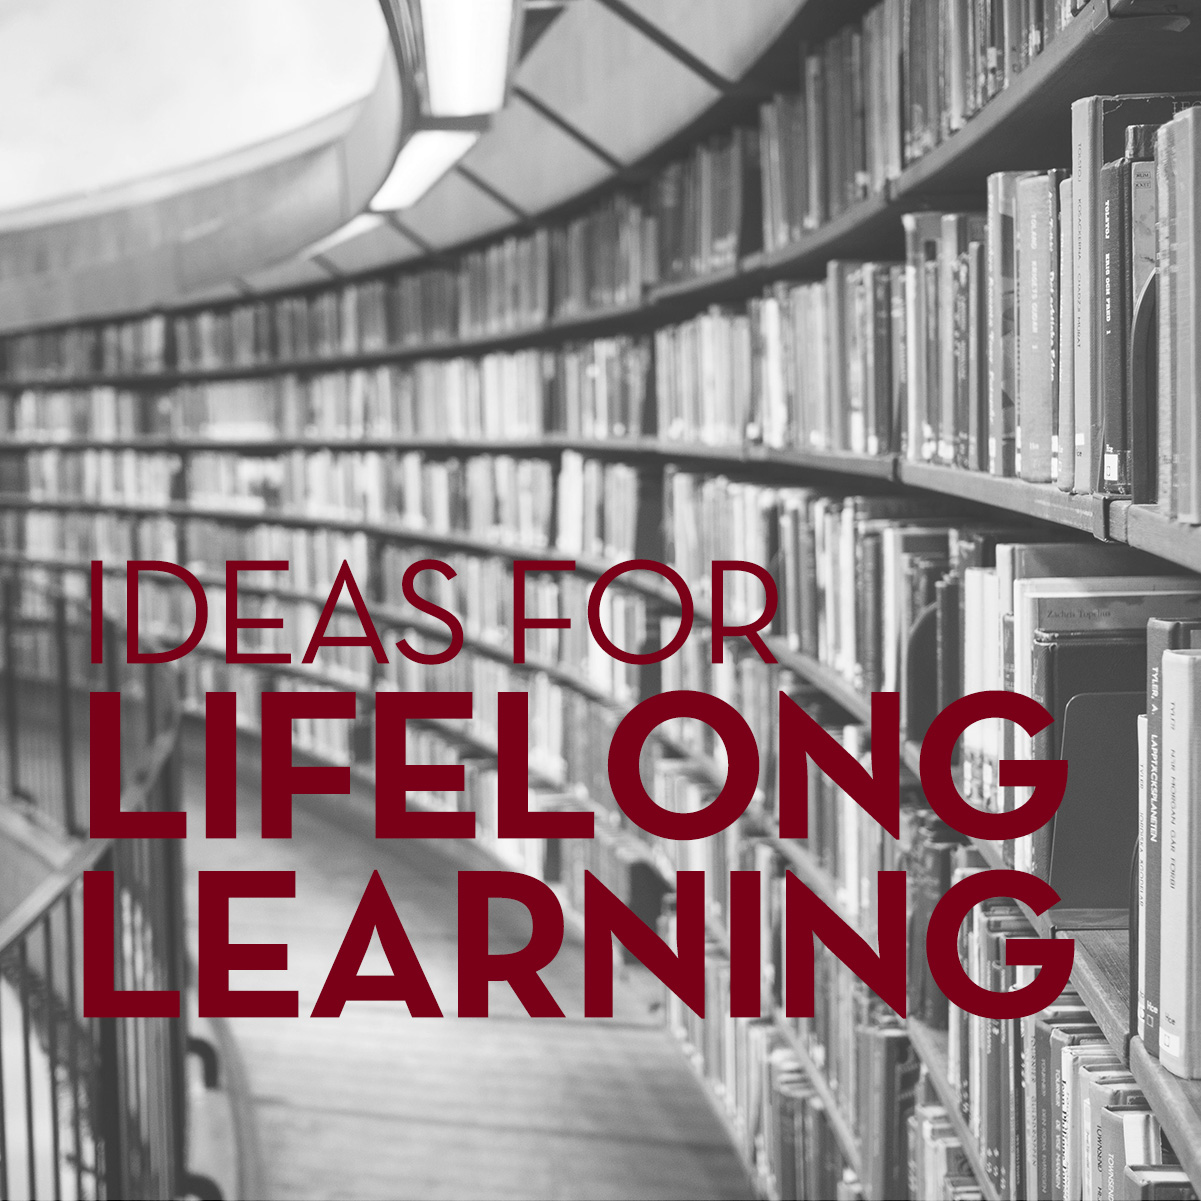 Image: arching library bookcase filled with books; black & white photo Text: Ideas for lifelong learning